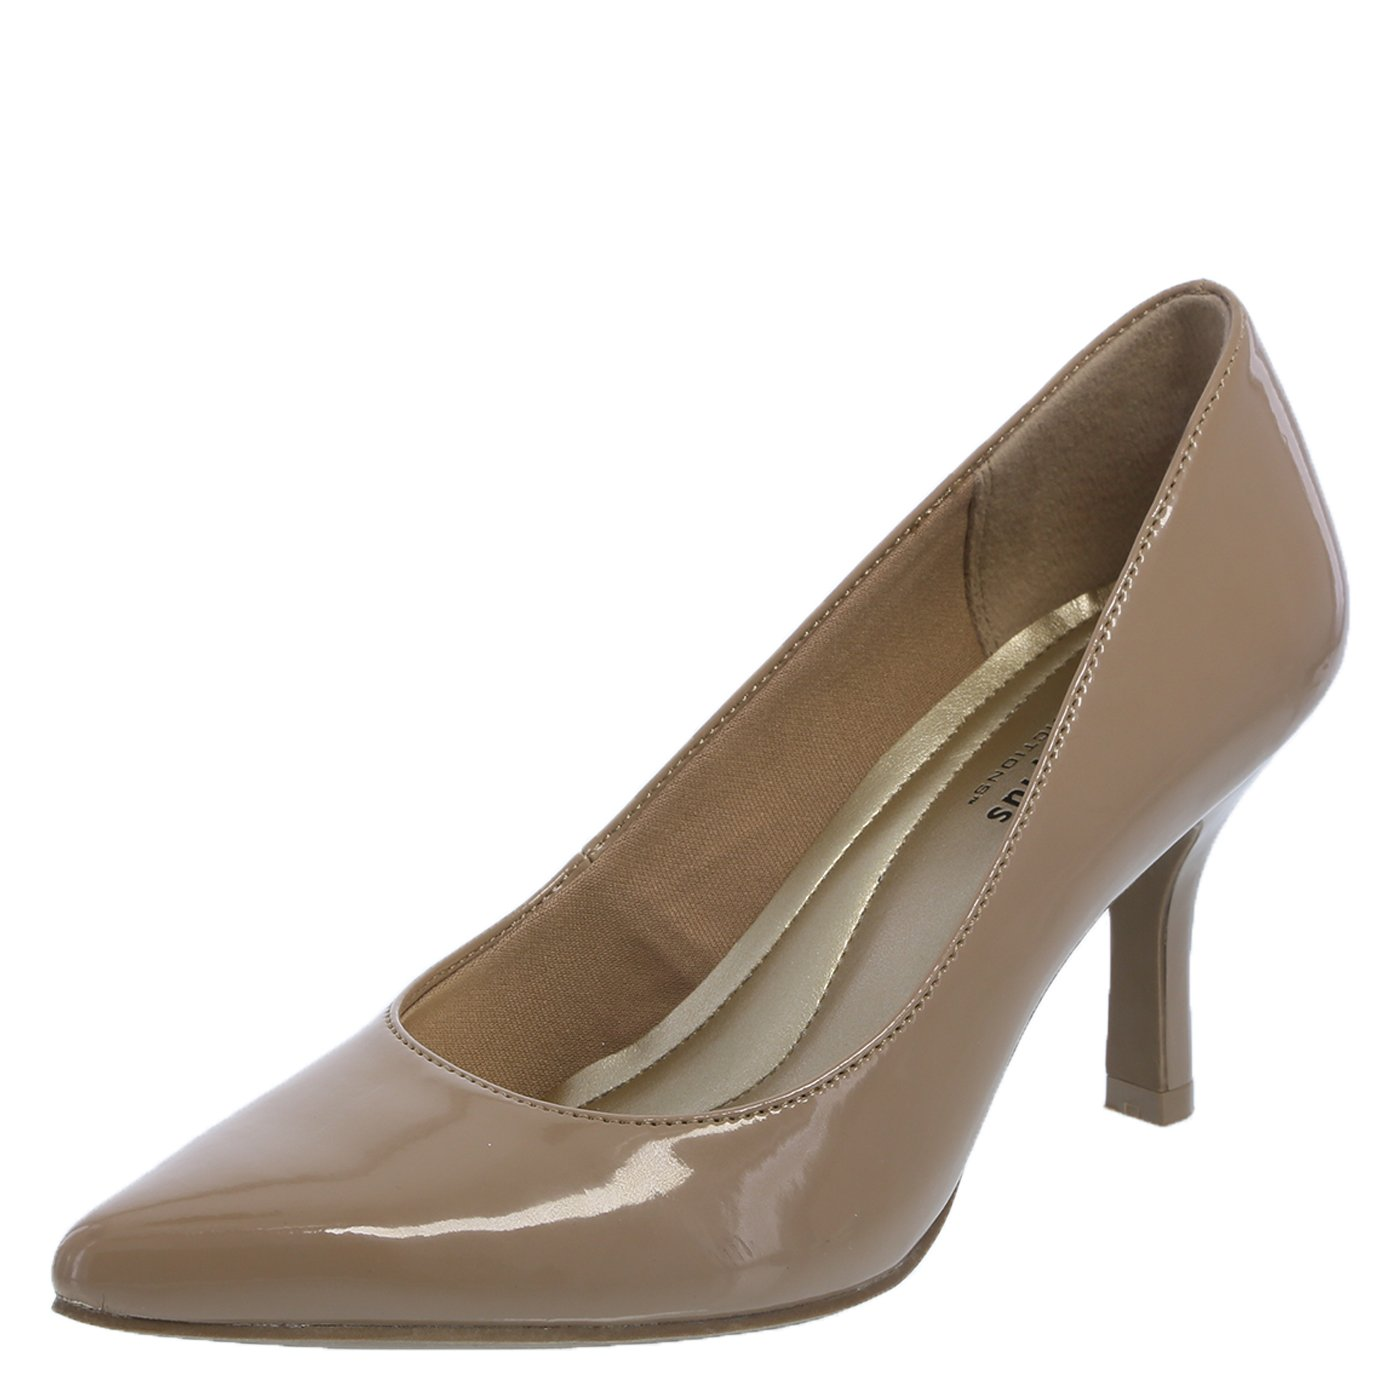 Predictions Comfort Plus by Women's Nude Women's Janine Pointy Toe Pump 9 Regular